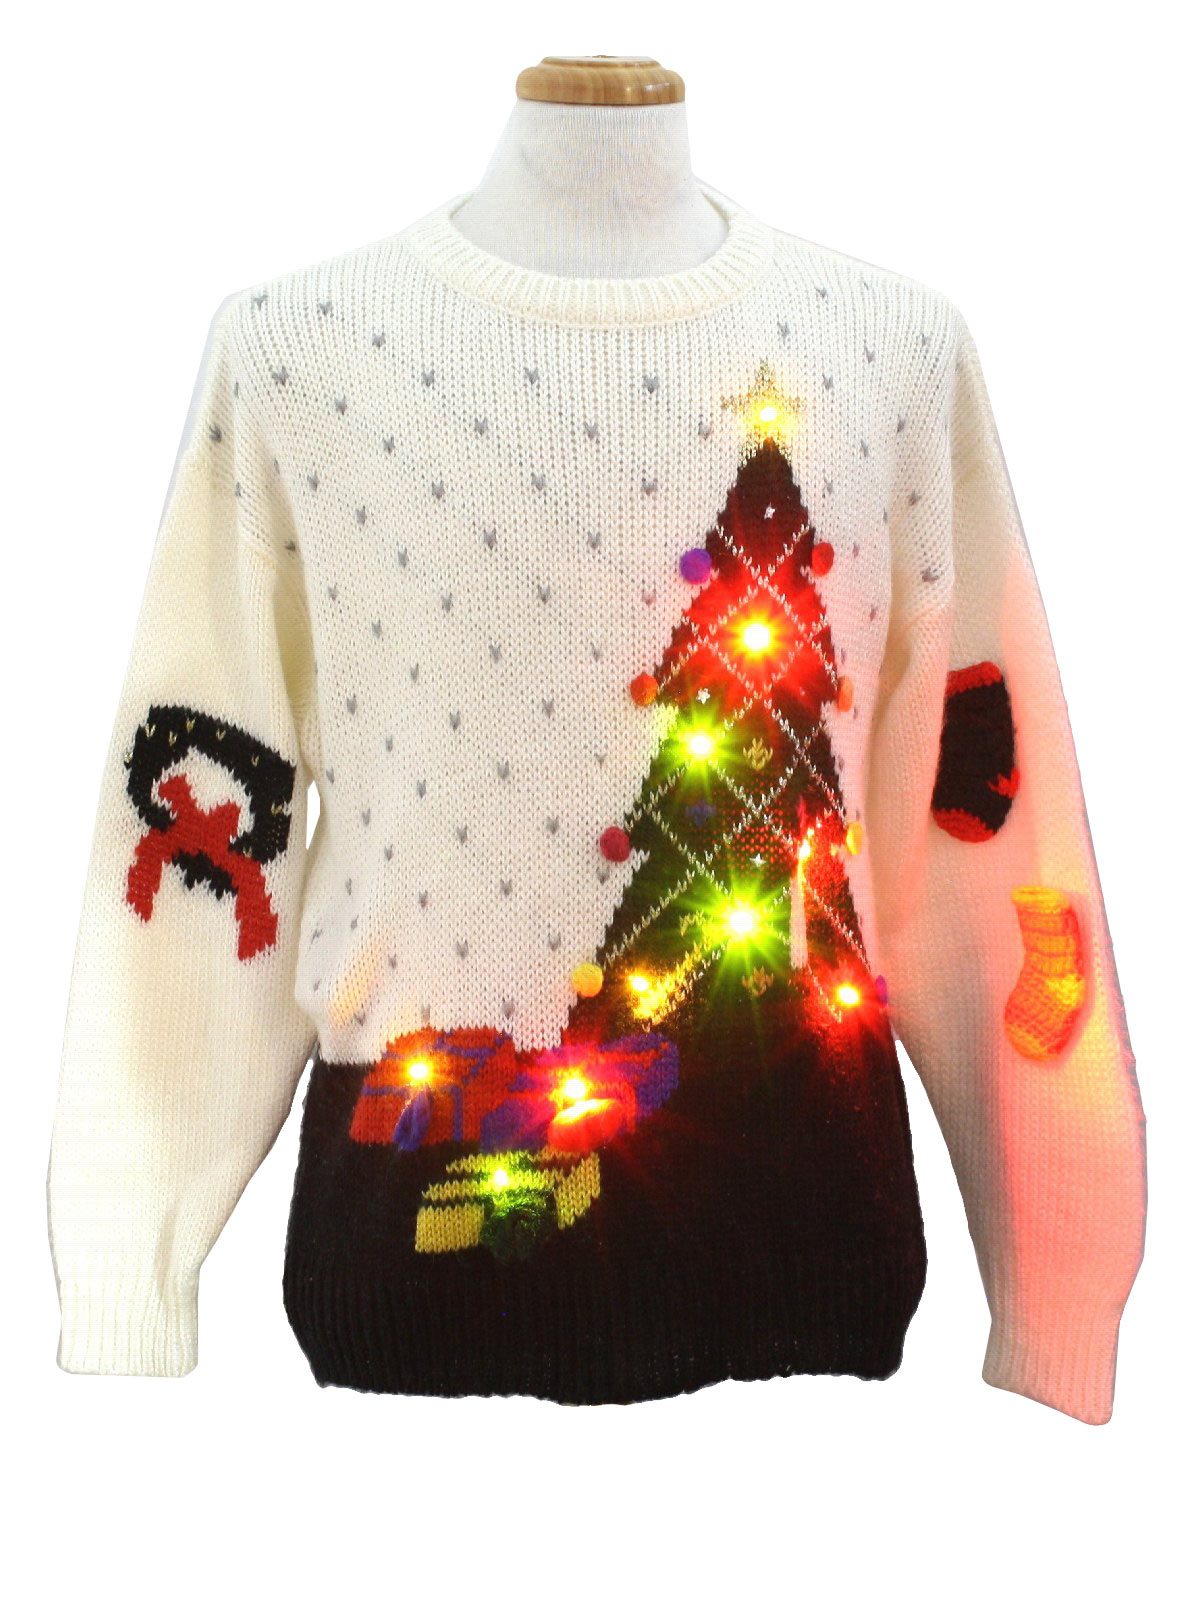 Fetagetti 1980s Vintage Lightup Ugly Christmas Sweater